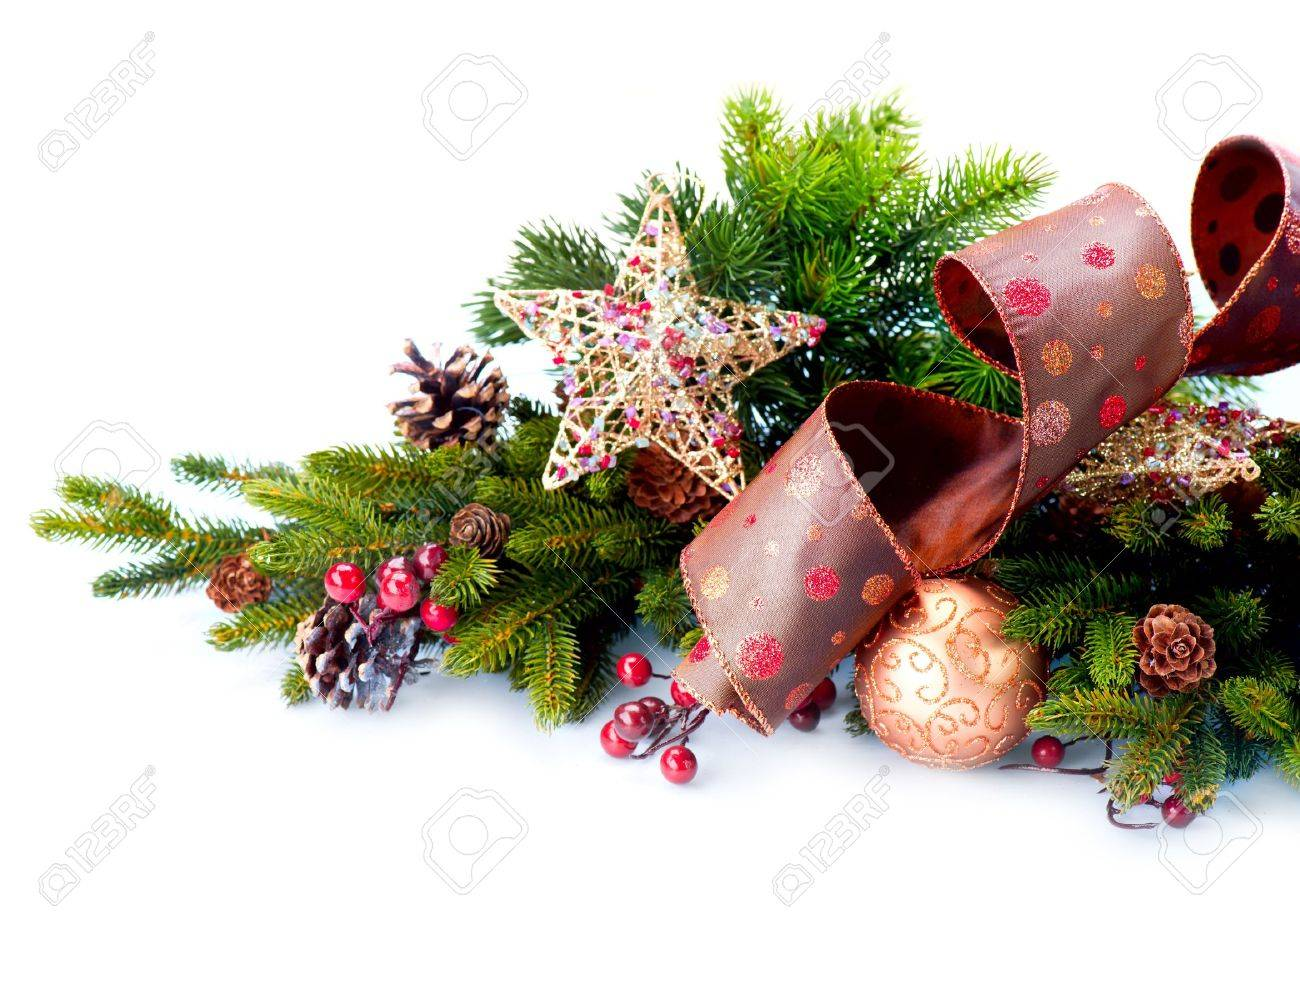 Hristmas Decoration Holiday Decorations Isolated On White Stock ...